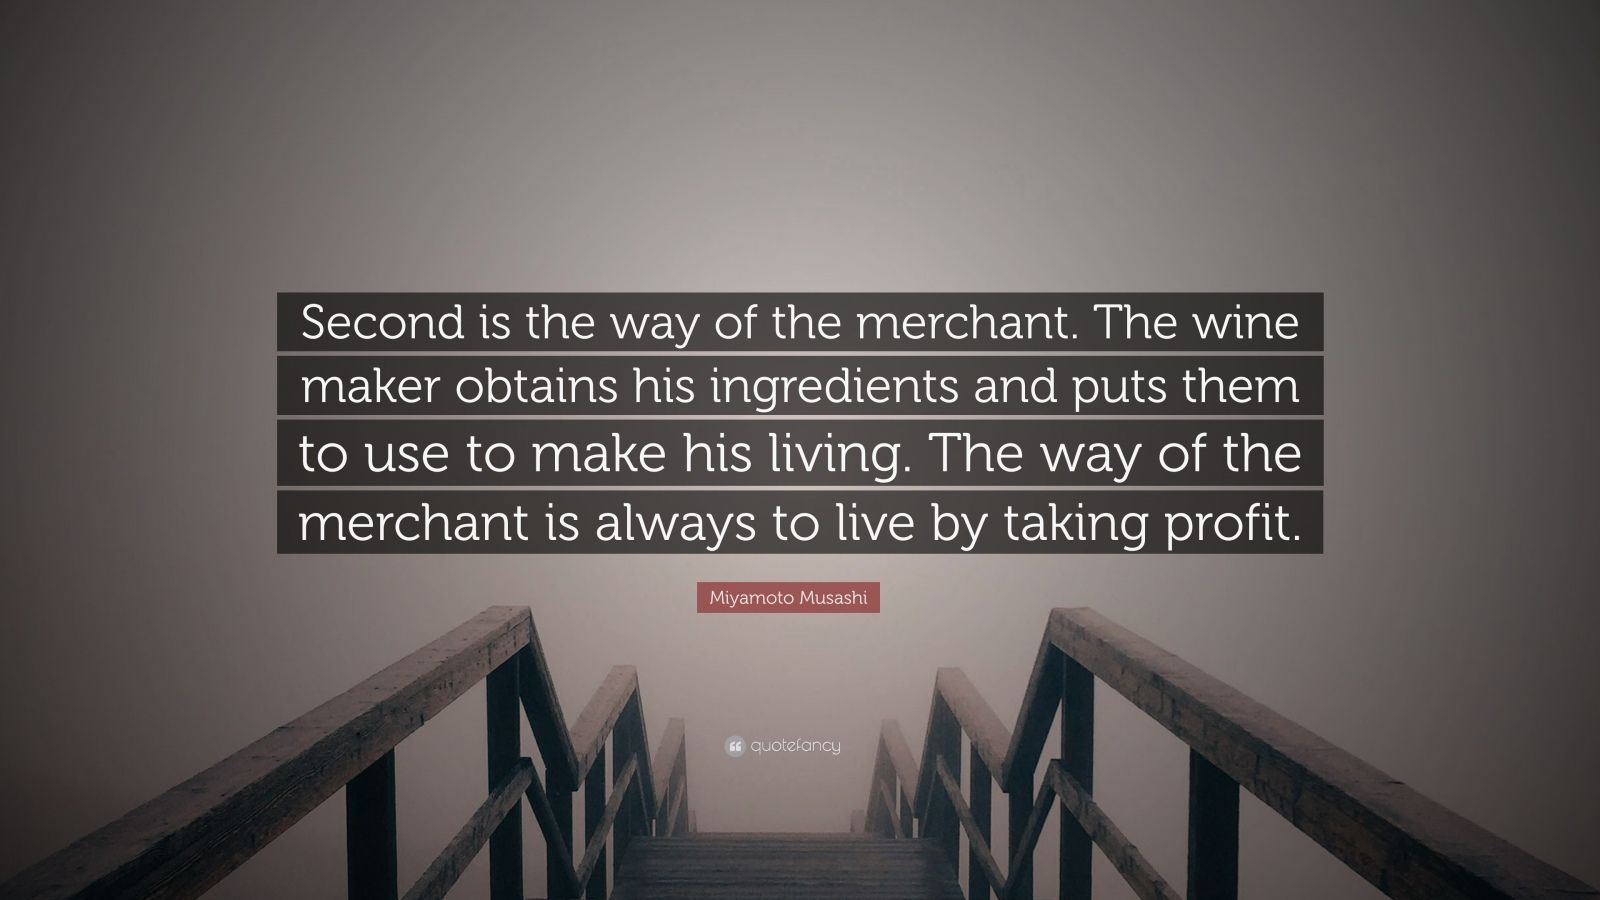 """Miyamoto Musashi Quote: """"Second is the way of the merchant. The wine maker obtains his ingredients and puts them to use to make his living. The way of the merchant is always to live by taking profit."""""""